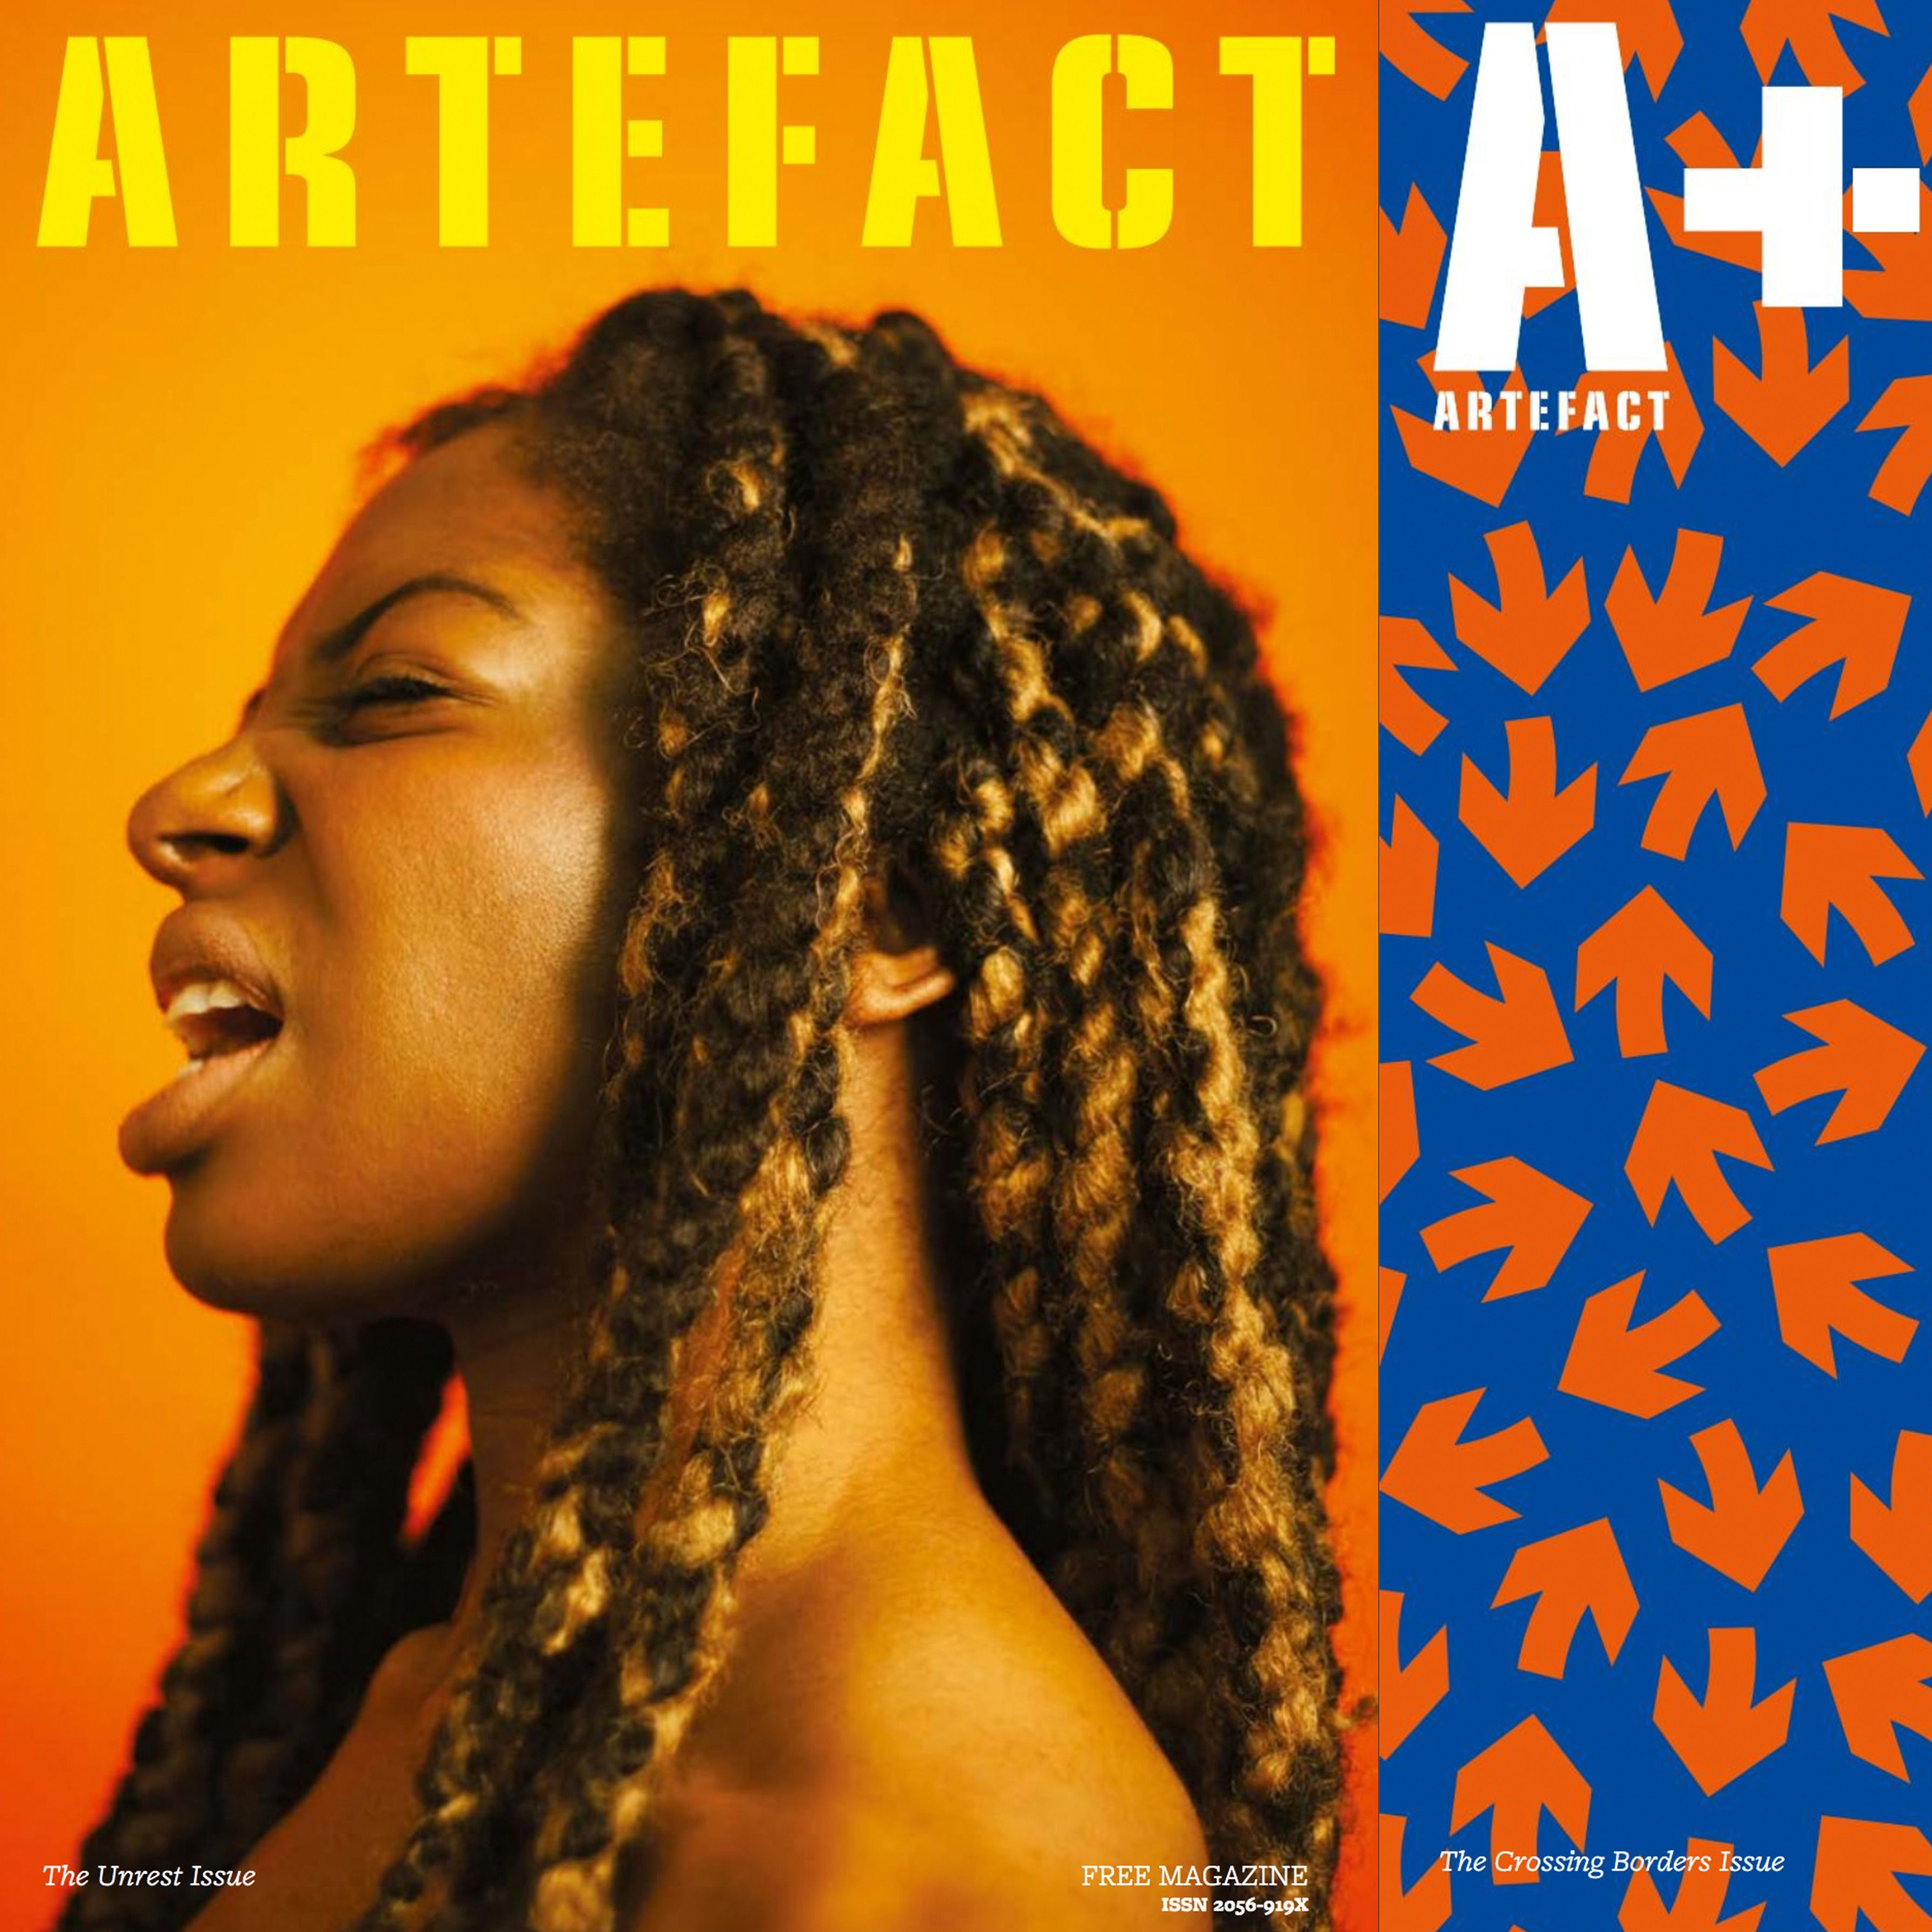 Two front cover designs for Artefact Magazine